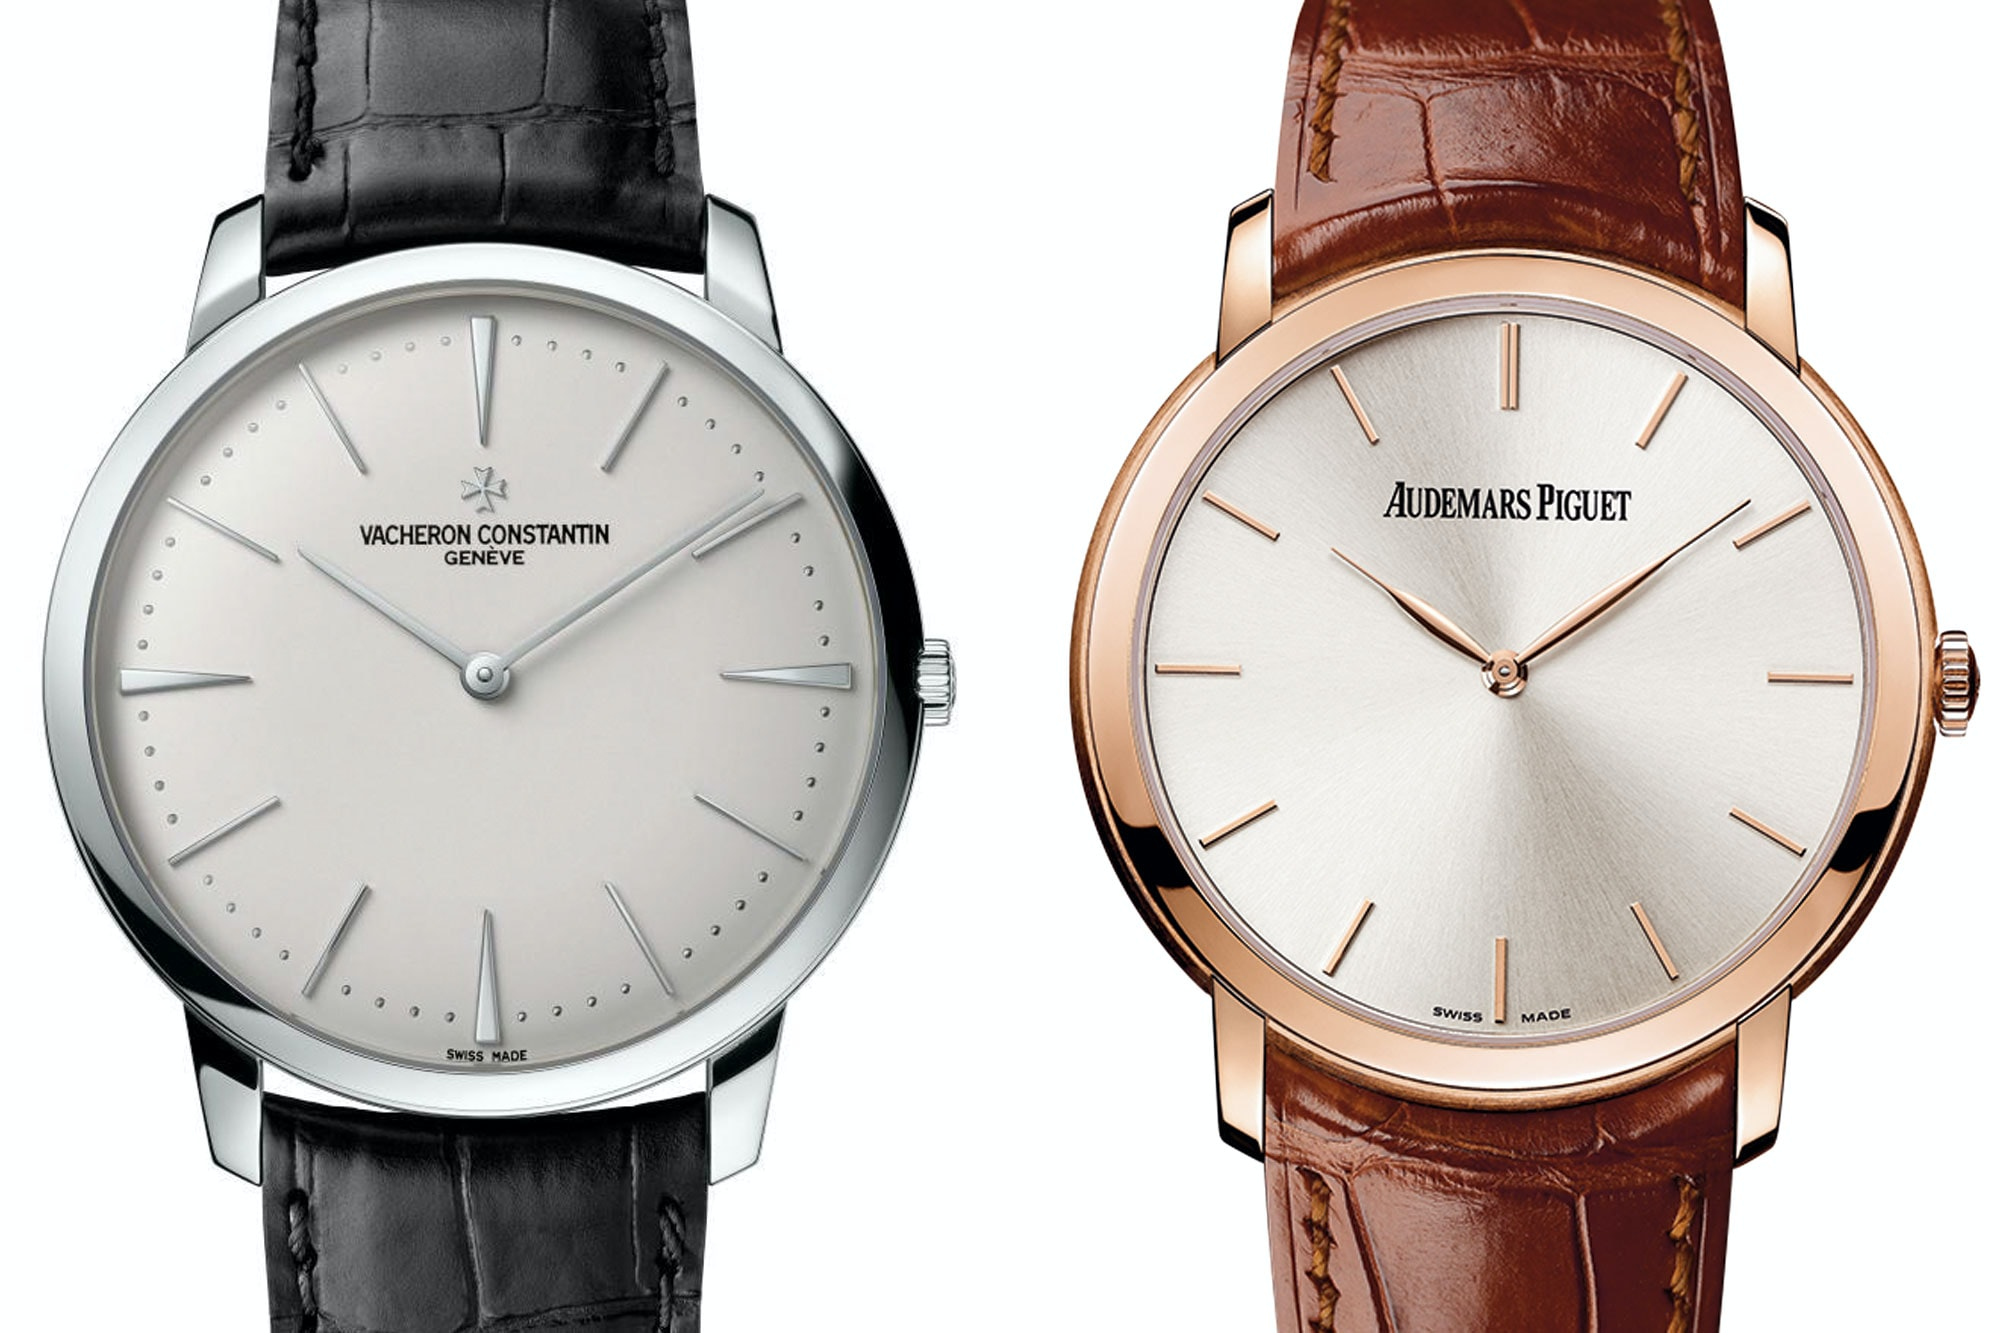 The Vacheron Constantin Patrimony ref. 81180 and Jules Audemars Self-Winding A Week On The Wrist: The A. Lange & Söhne Saxonia Thin 37mm A Week On The Wrist: The A. Lange & Söhne Saxonia Thin 37mm vc ap